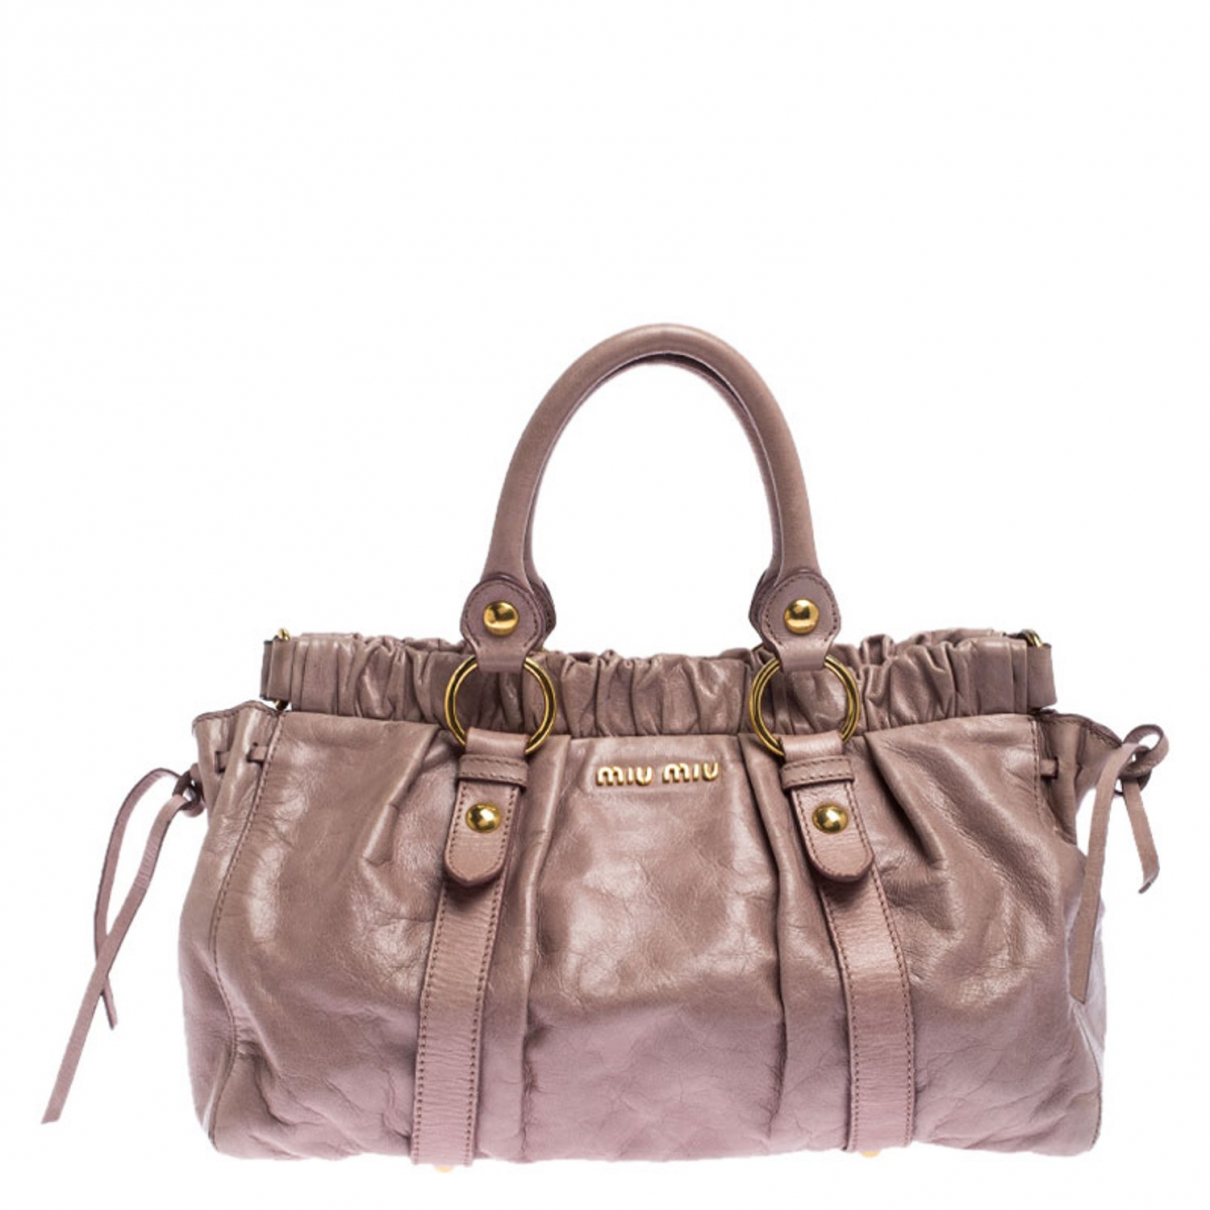 Miu Miu Bow bag Pink Leather handbag for Women \N